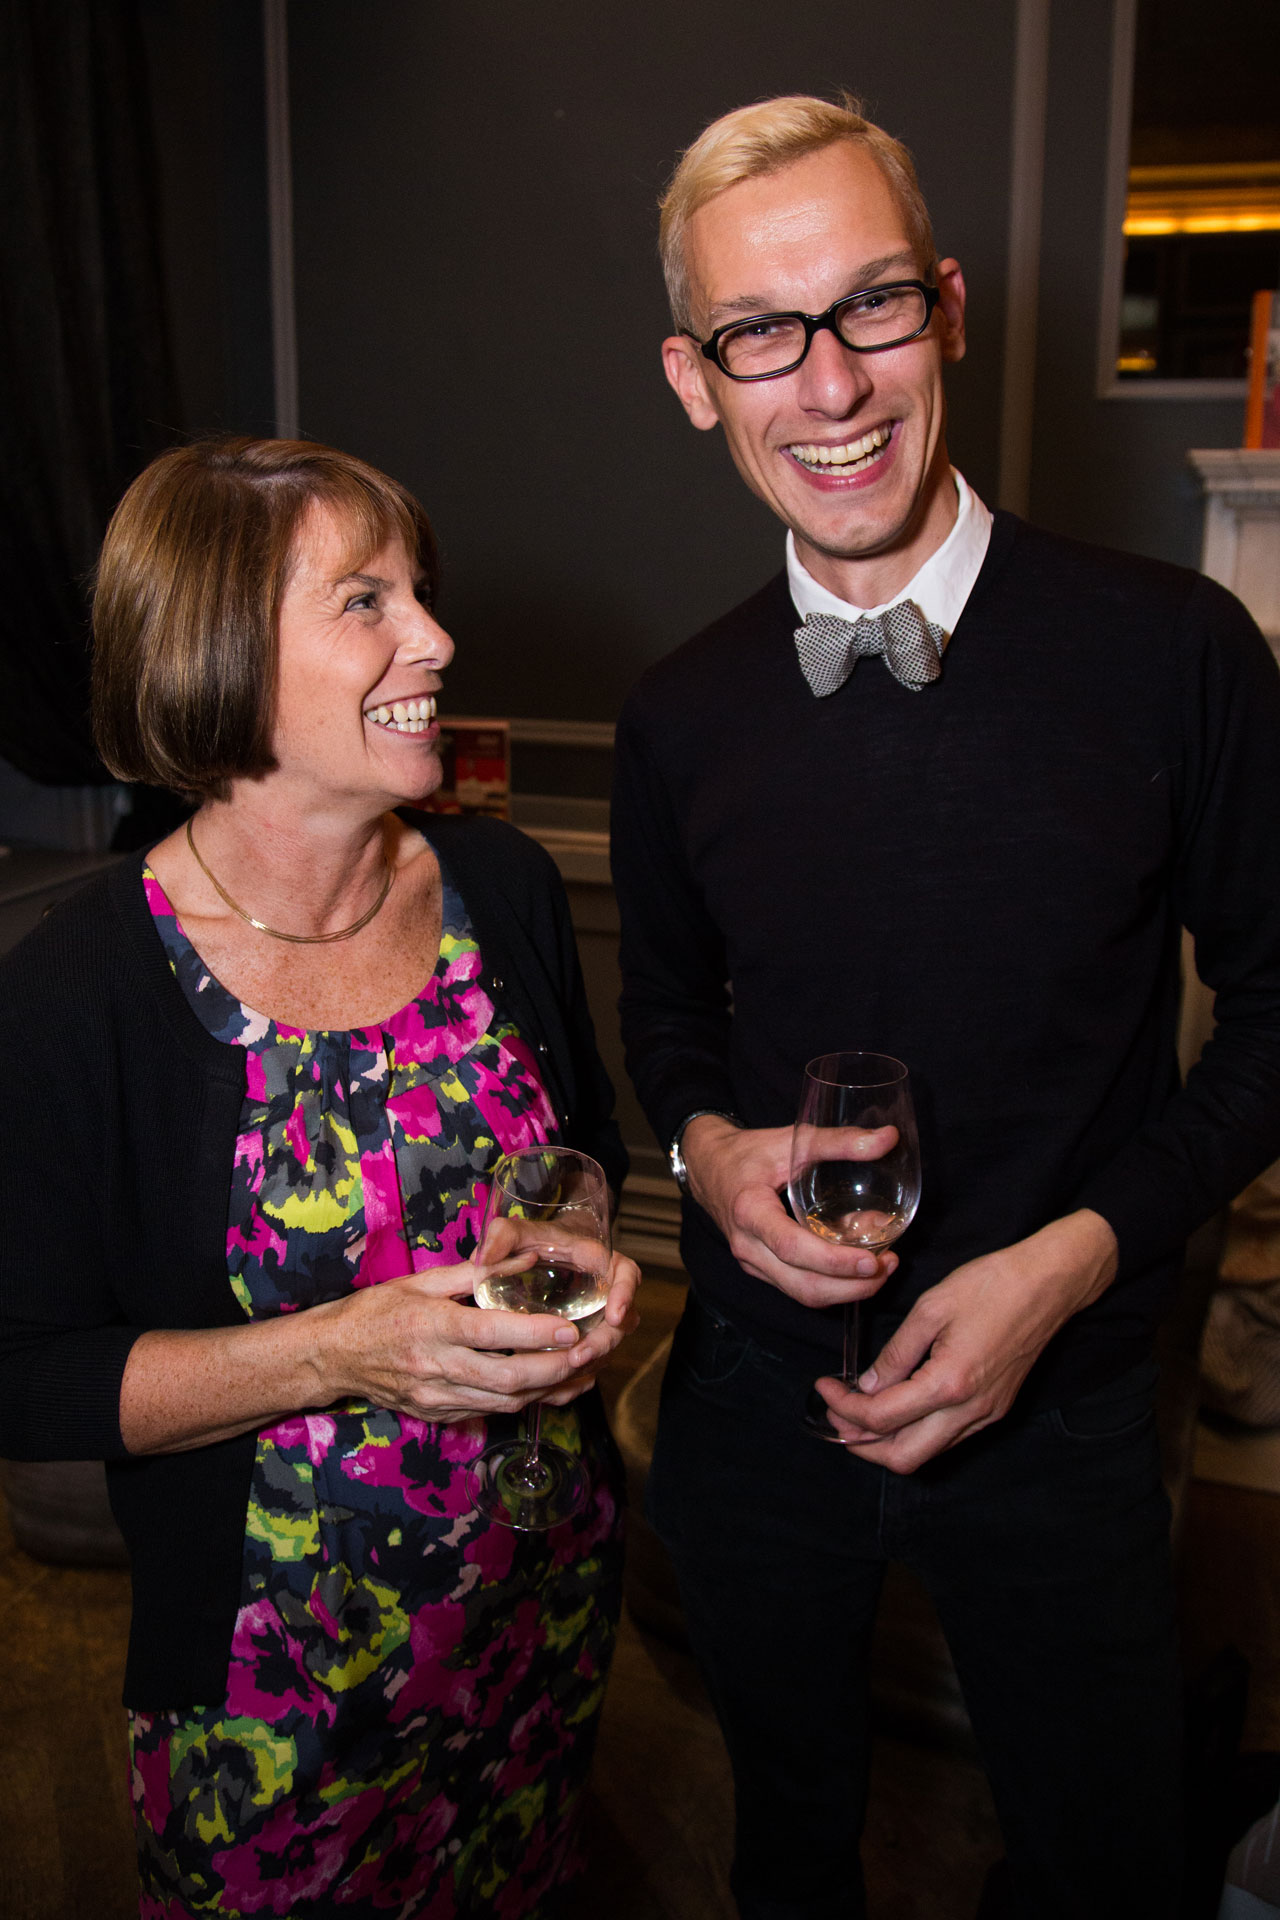 Alison-Goff-and-Mark-Hill-house-26sep14_Michael-Newington-Gray_b.jpg